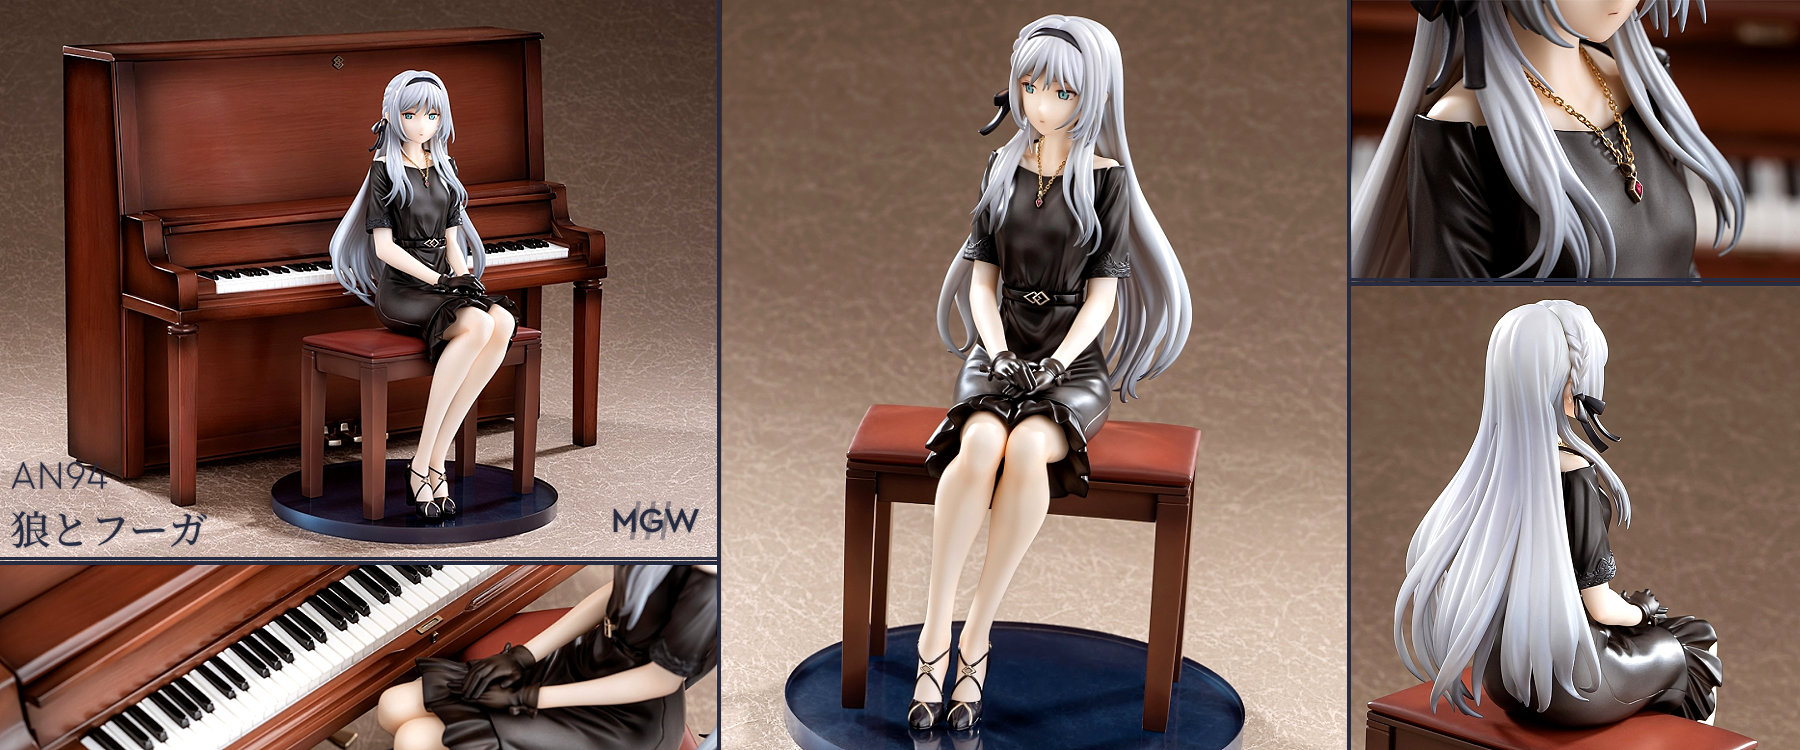 Girls Frontline AN94 Wolf and Fuge Ver. by HobbyMax MyGrailWatch Anime Figure Guide